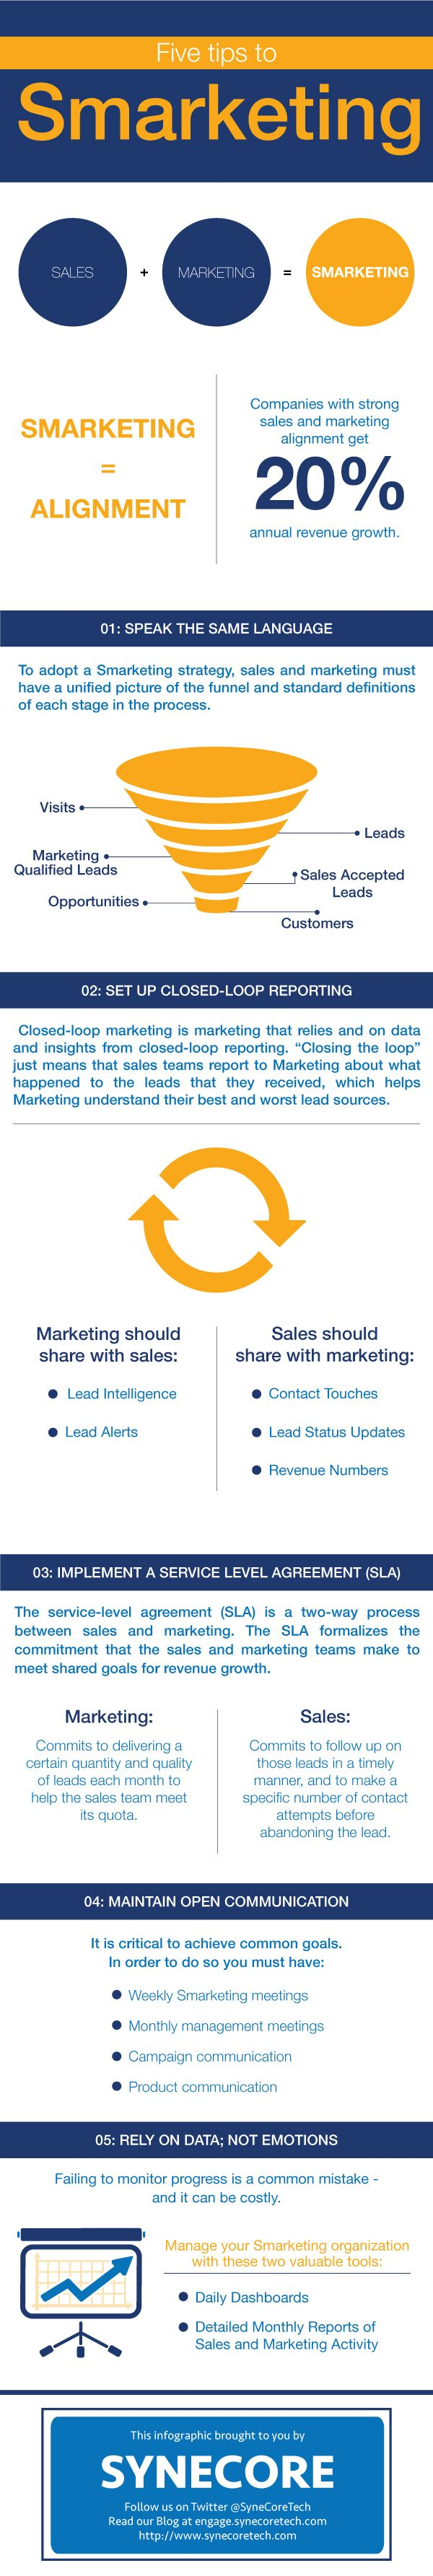 5 Tips to Smarketing! [Infographic]  http://engage.synecoretech.com/marketing-technology-for-growth/bid/194920/5-Tips-to-Smarketing-Infographic